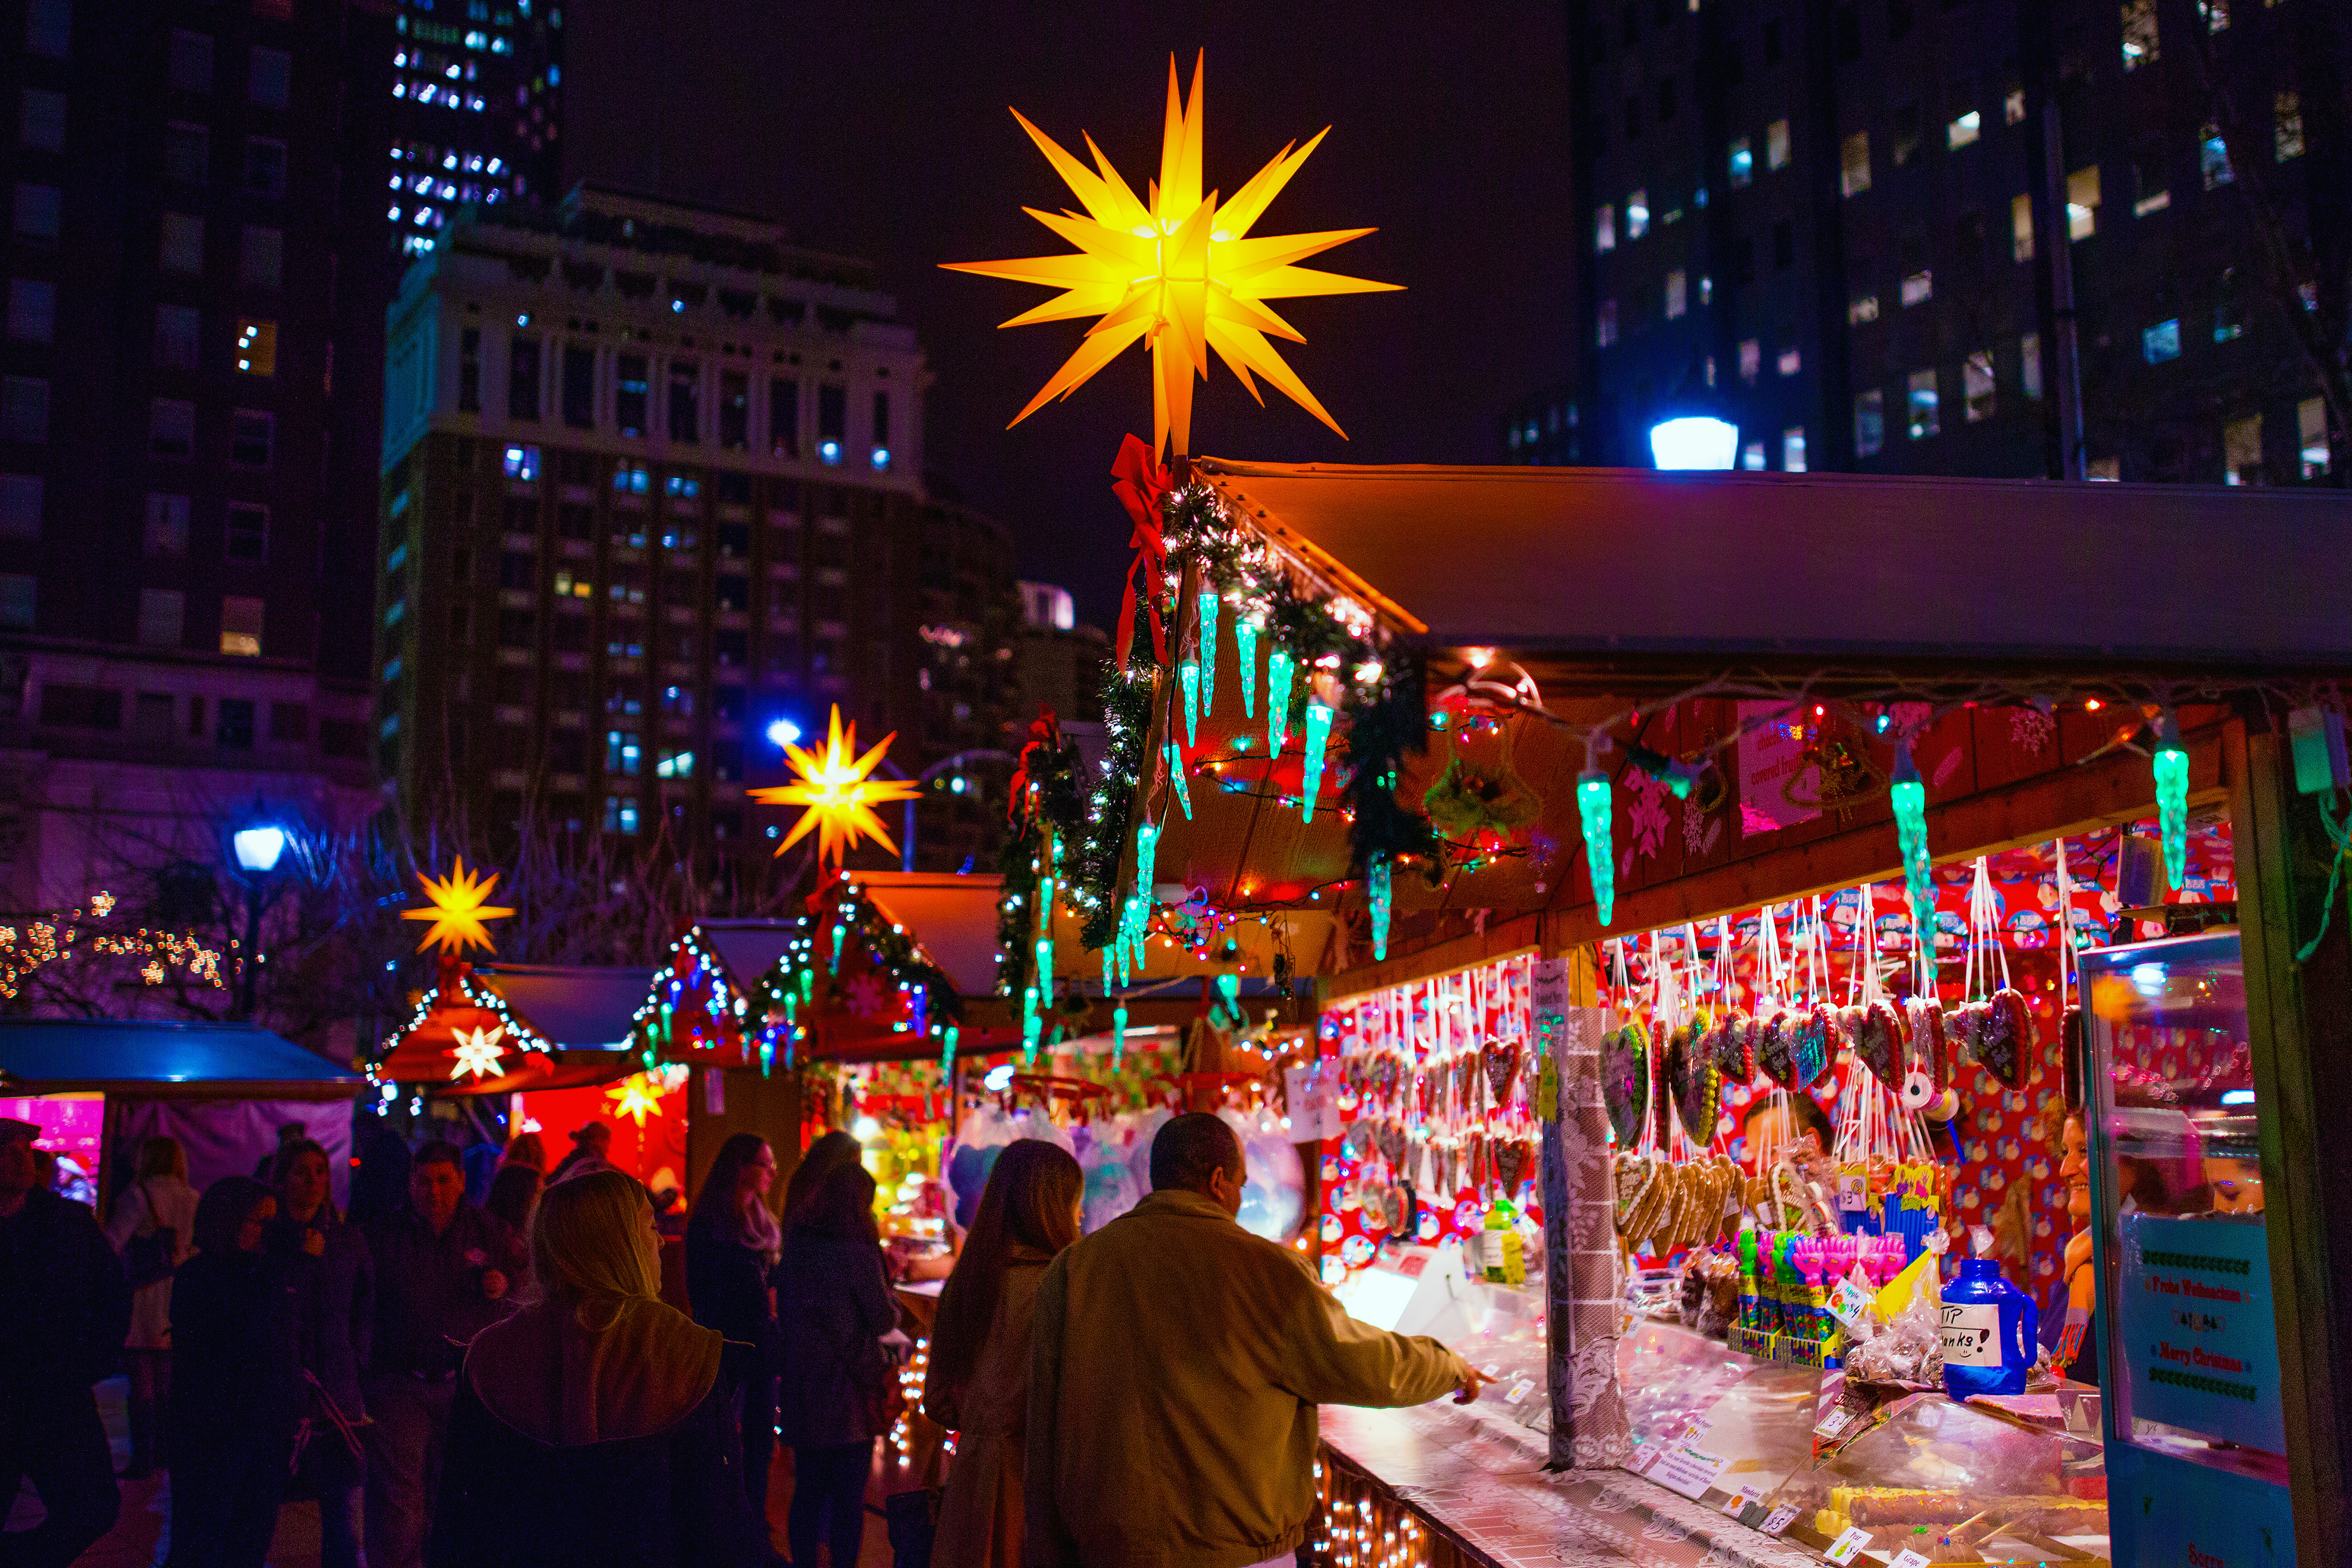 Each holiday season, Philadelphia's Love Park is transformed into a traditional German Christmas Village, where more than 90 merchants sell holiday decor and gifts, toys, clothing, jewelry, artwork and crafts. Shoppers can nibble on European-style seasona